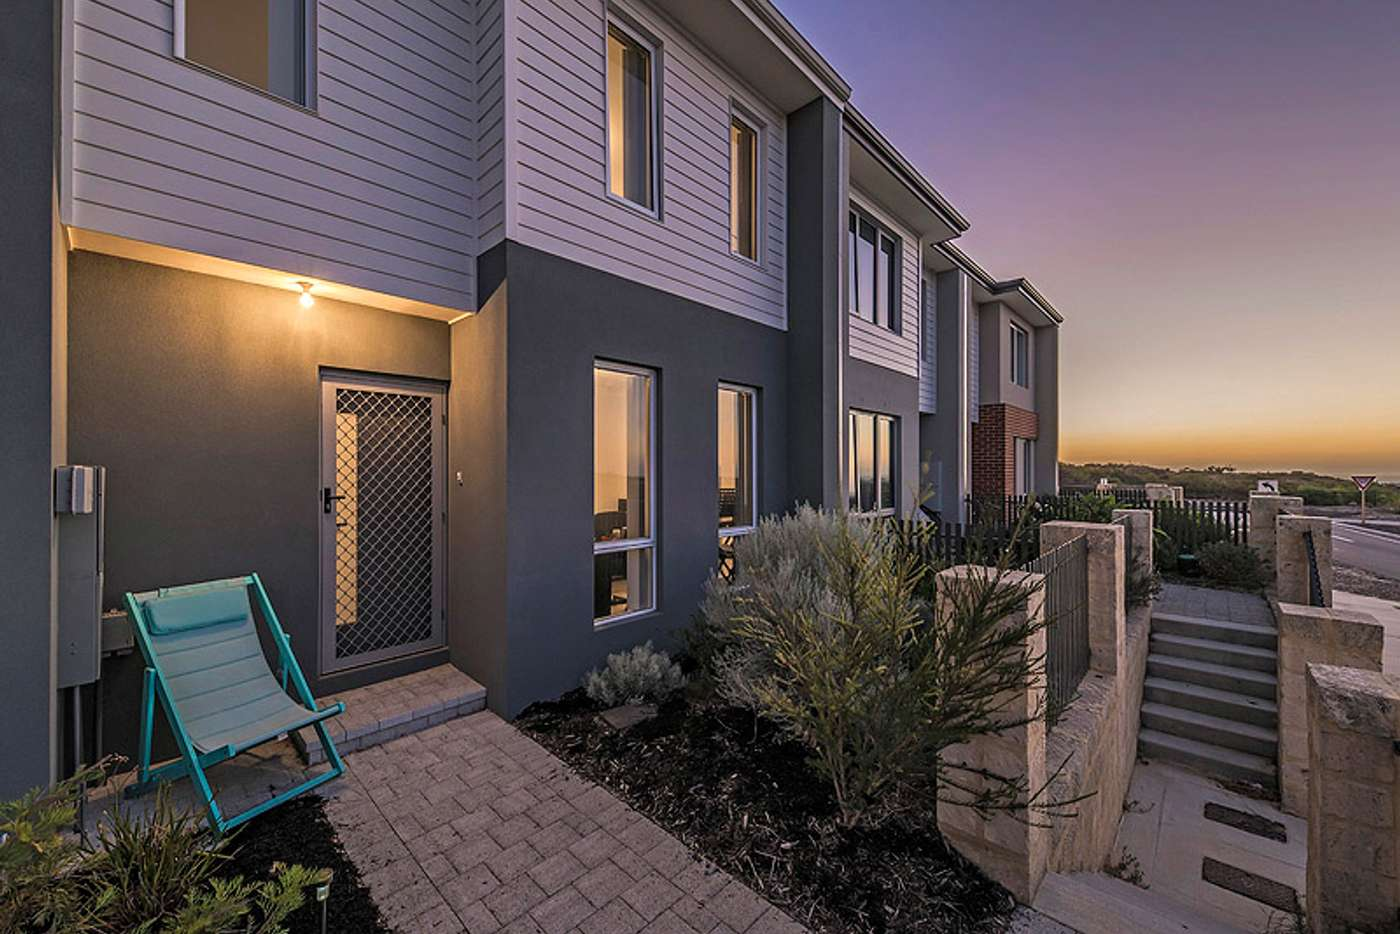 Main view of Homely house listing, 8 Darbyshire Parade, Alkimos WA 6038